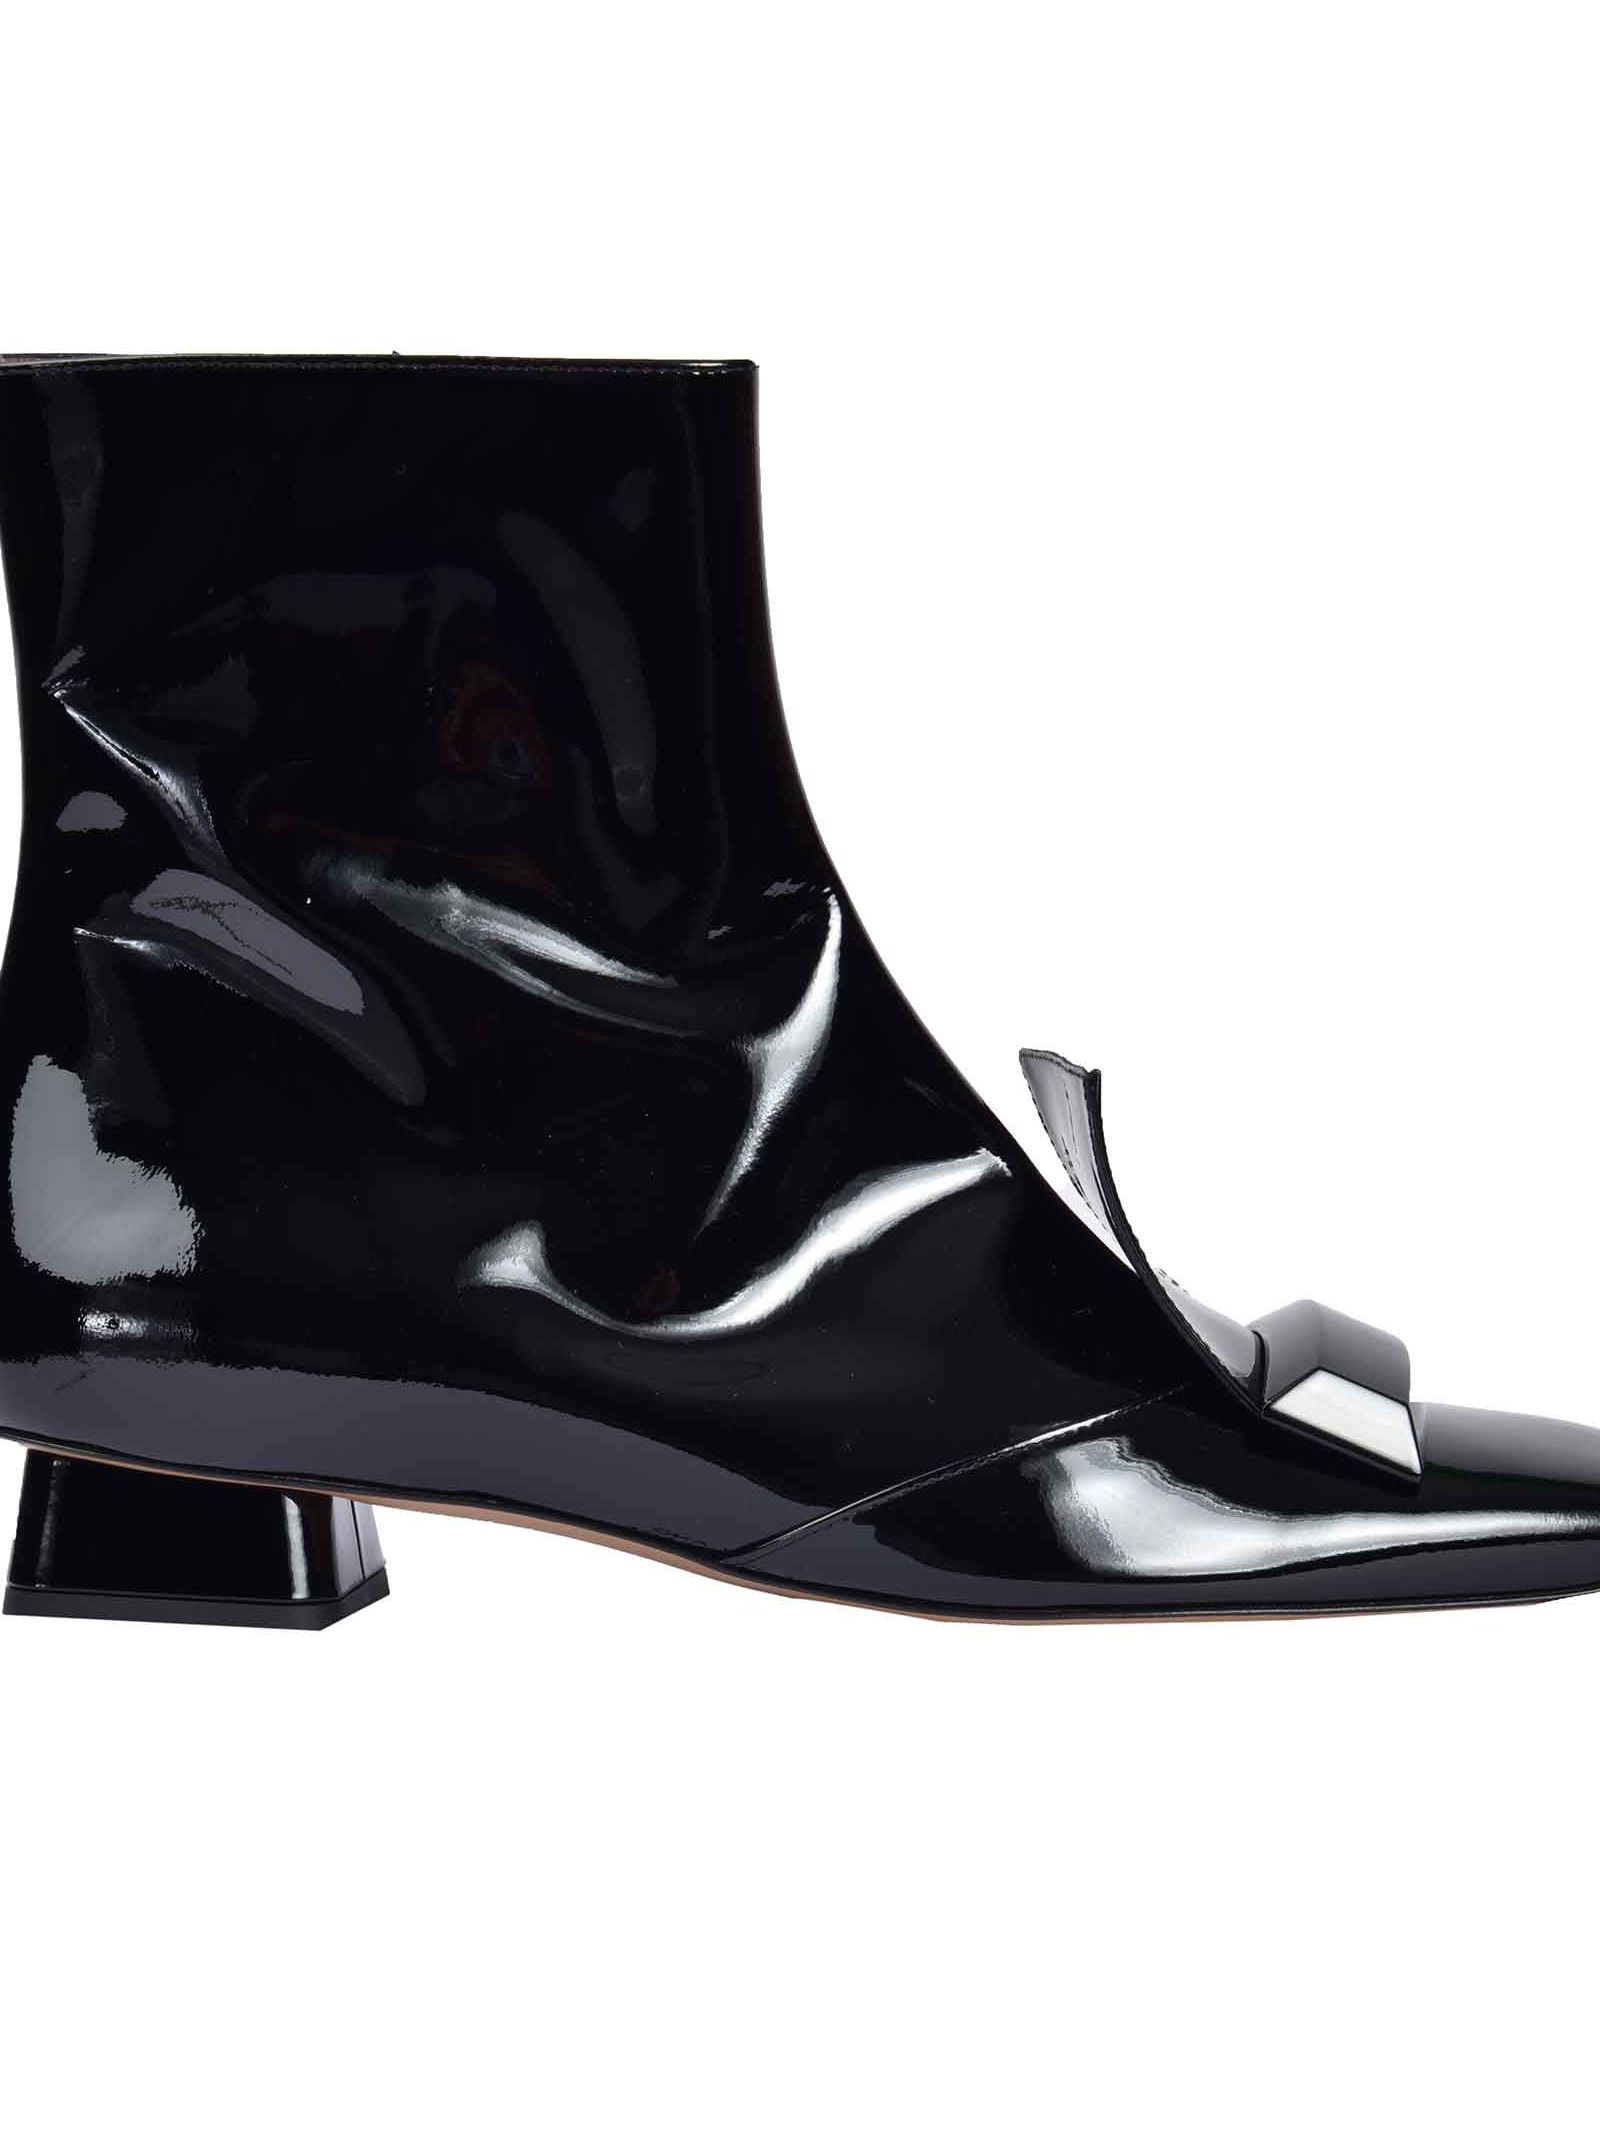 RAYNE LONDON Geometric Ankle Boots in Nero